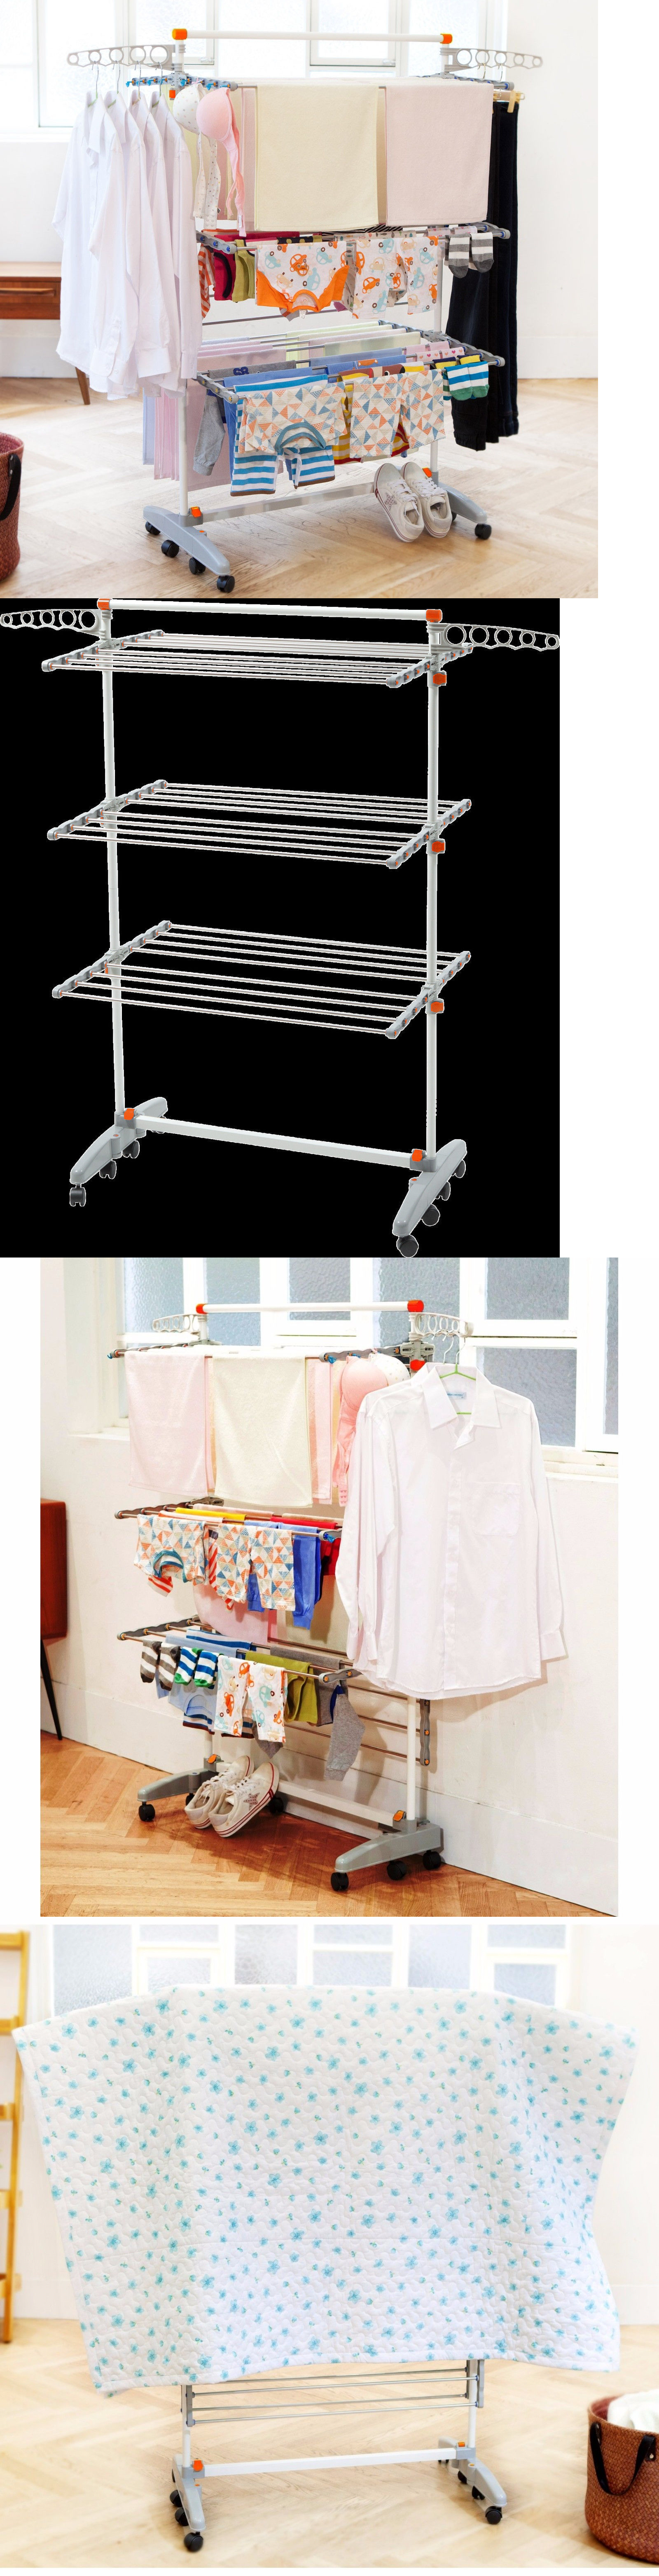 Clotheslines and laundry hangers clothes drying rack laundry